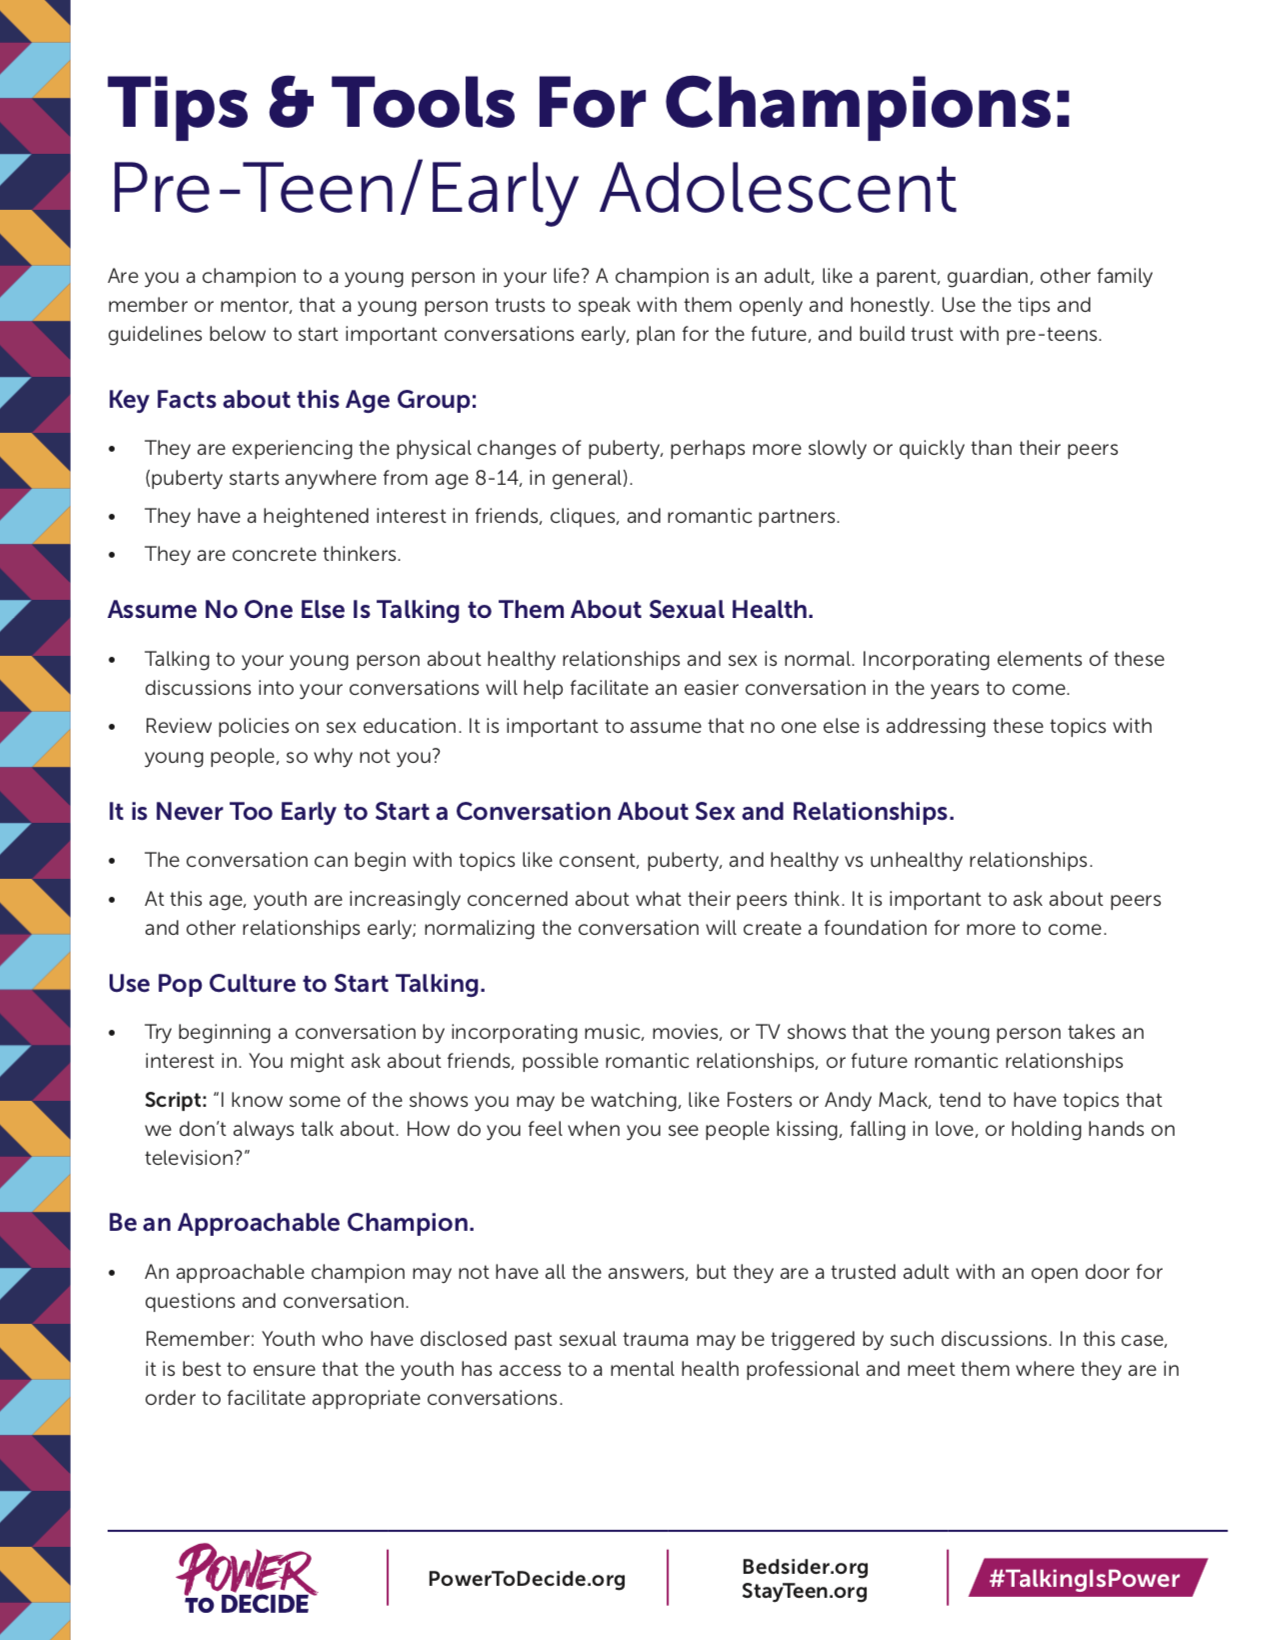 Tips & Tools For Trusted Adults: Pre-Teen/Early Adolescent